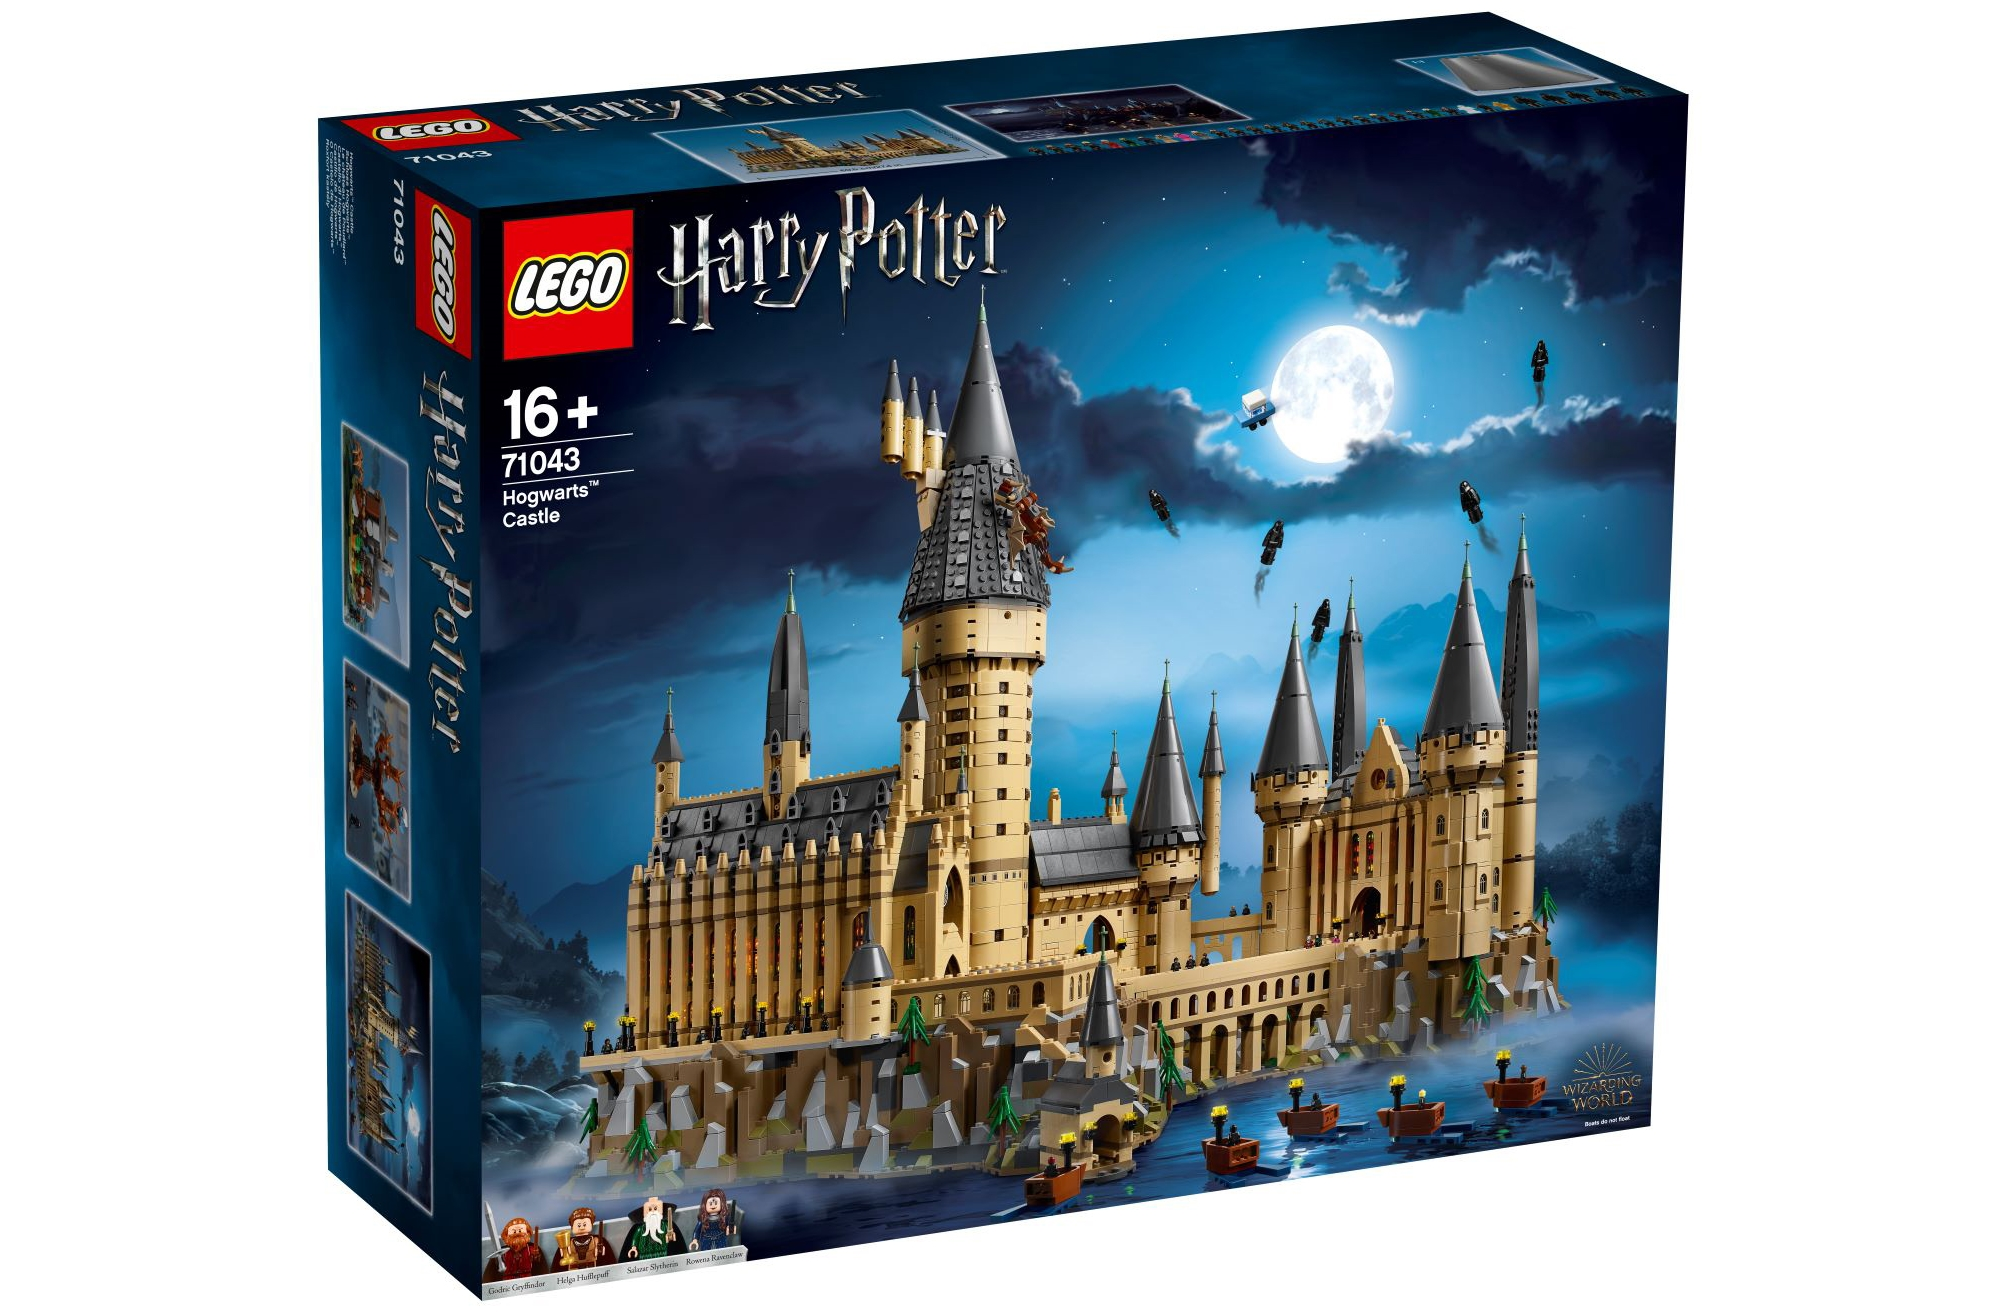 Lego Hogwarts Castle is the second biggest Lego set ever (and it's awesome)